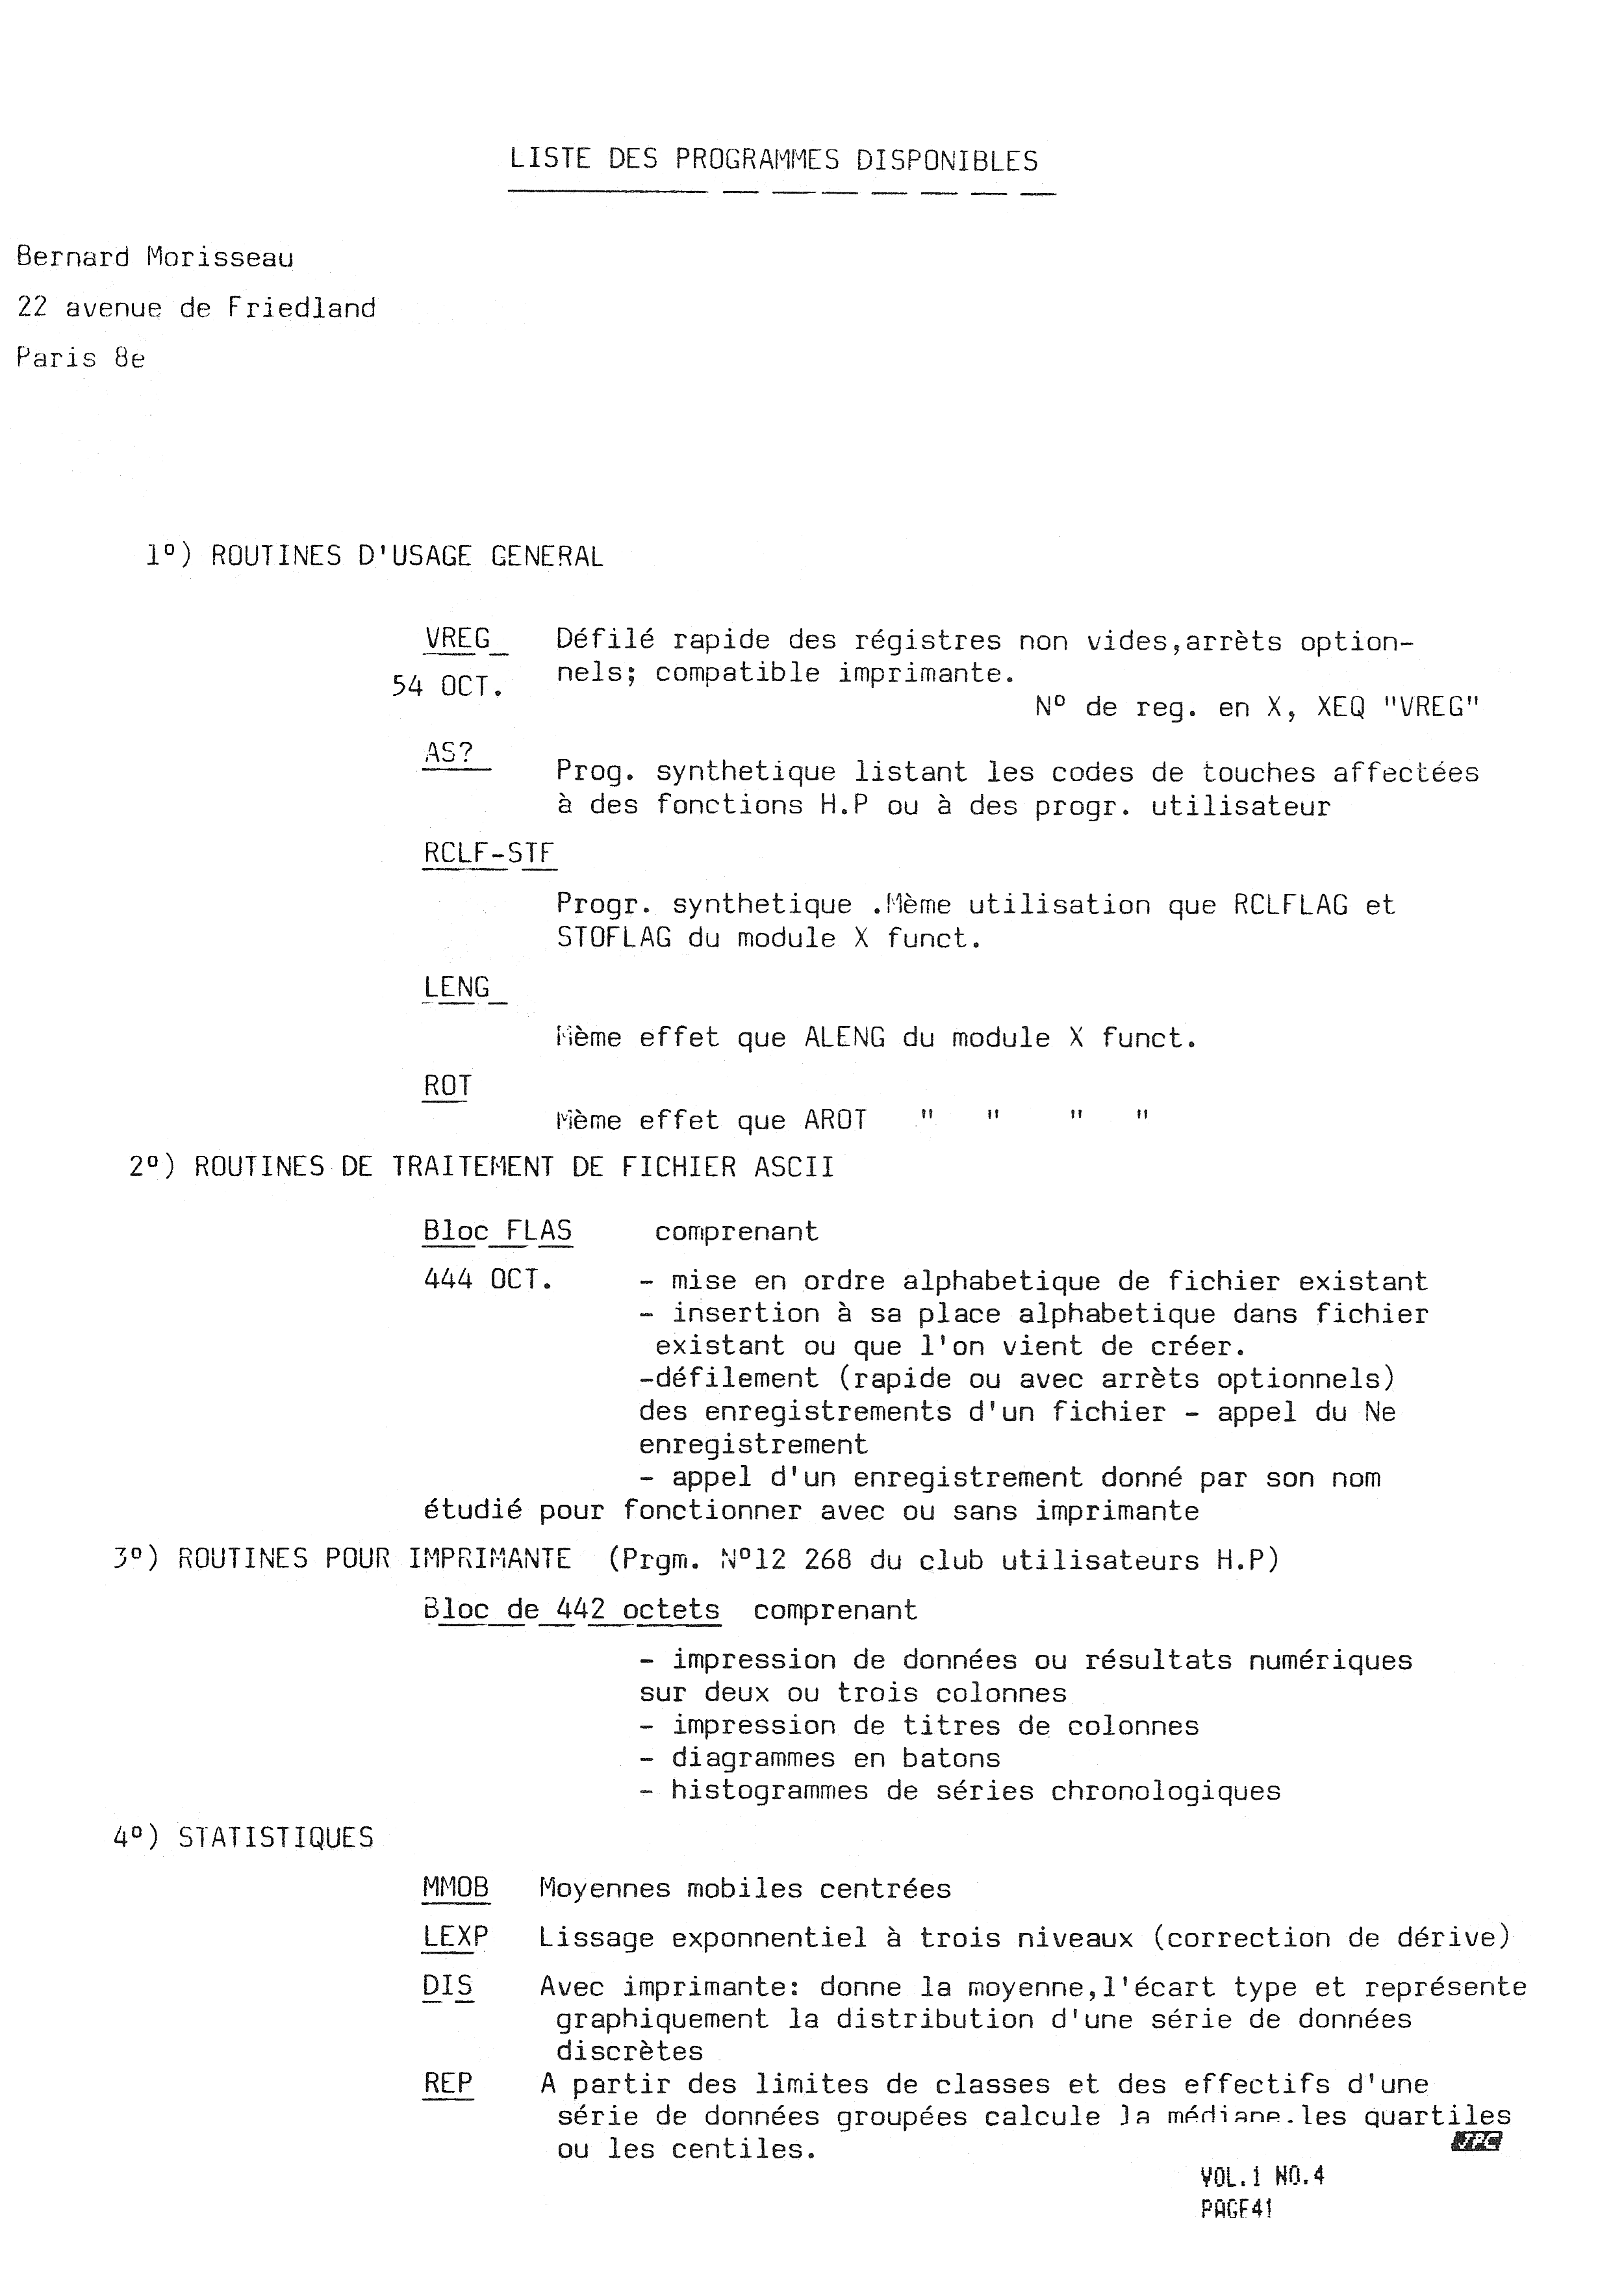 Jp-4-page-41-1000